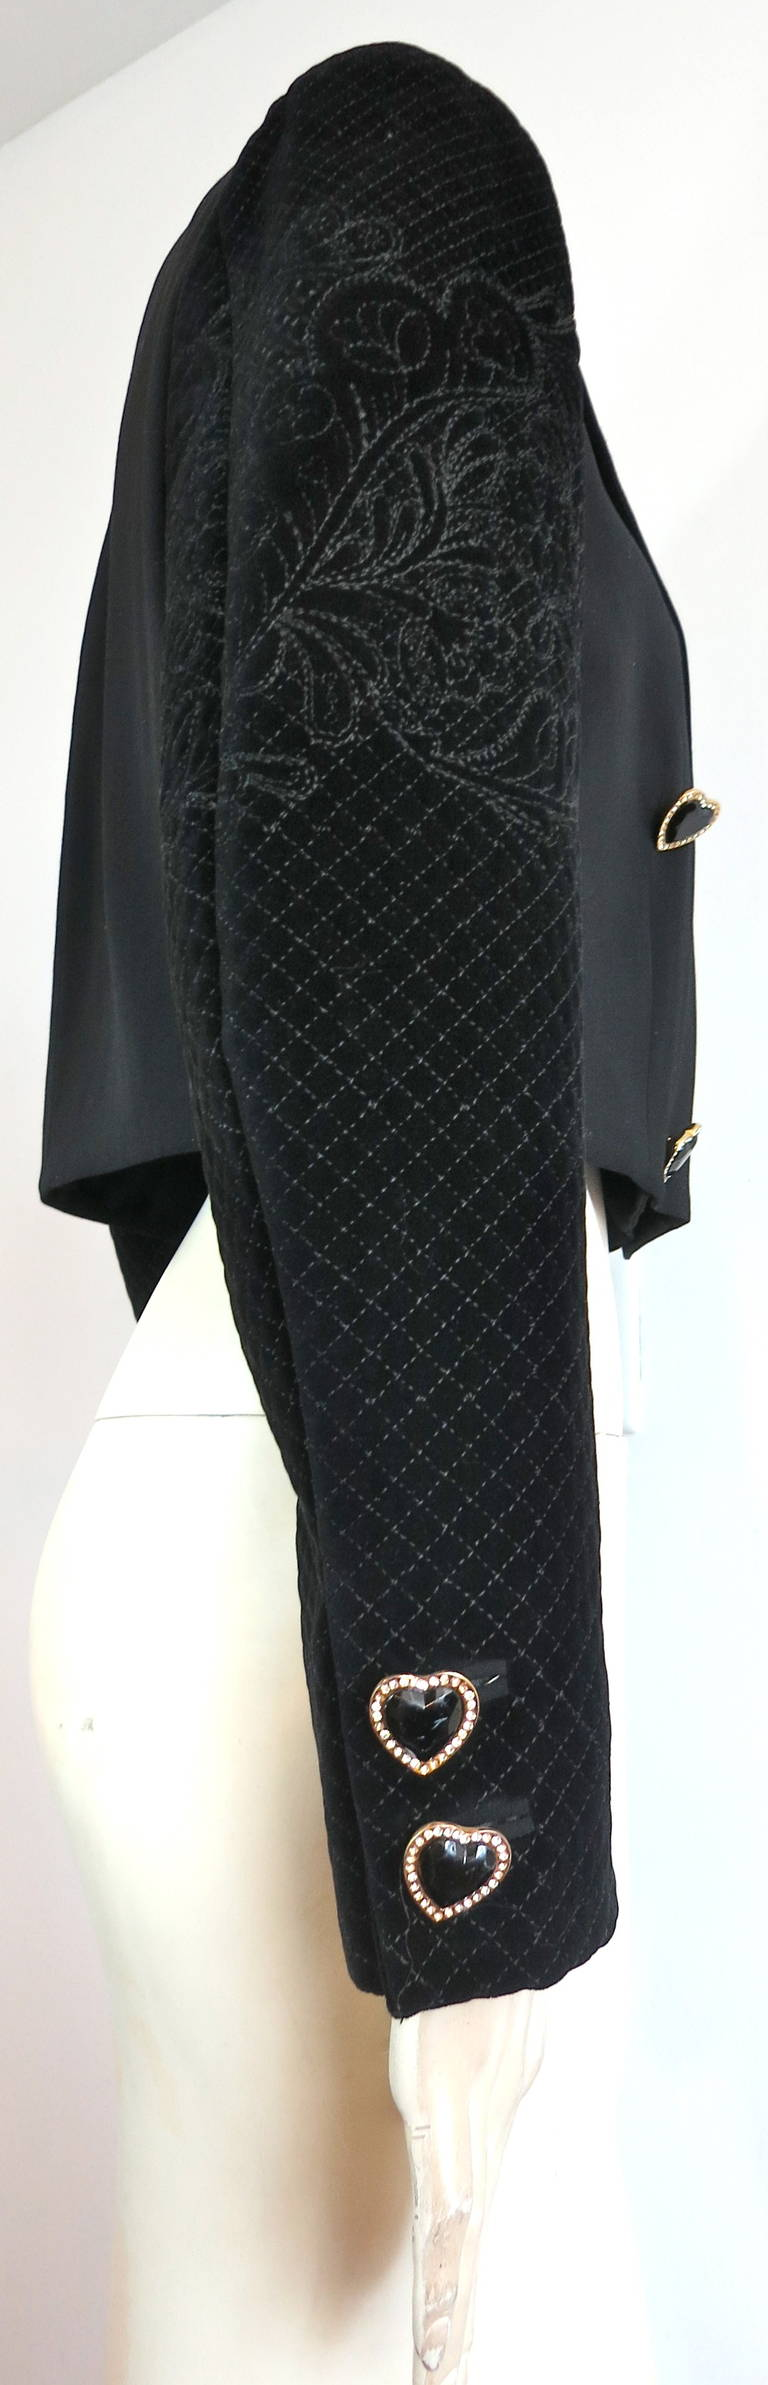 S gianni versace couture embroidered tuxedo jacket at